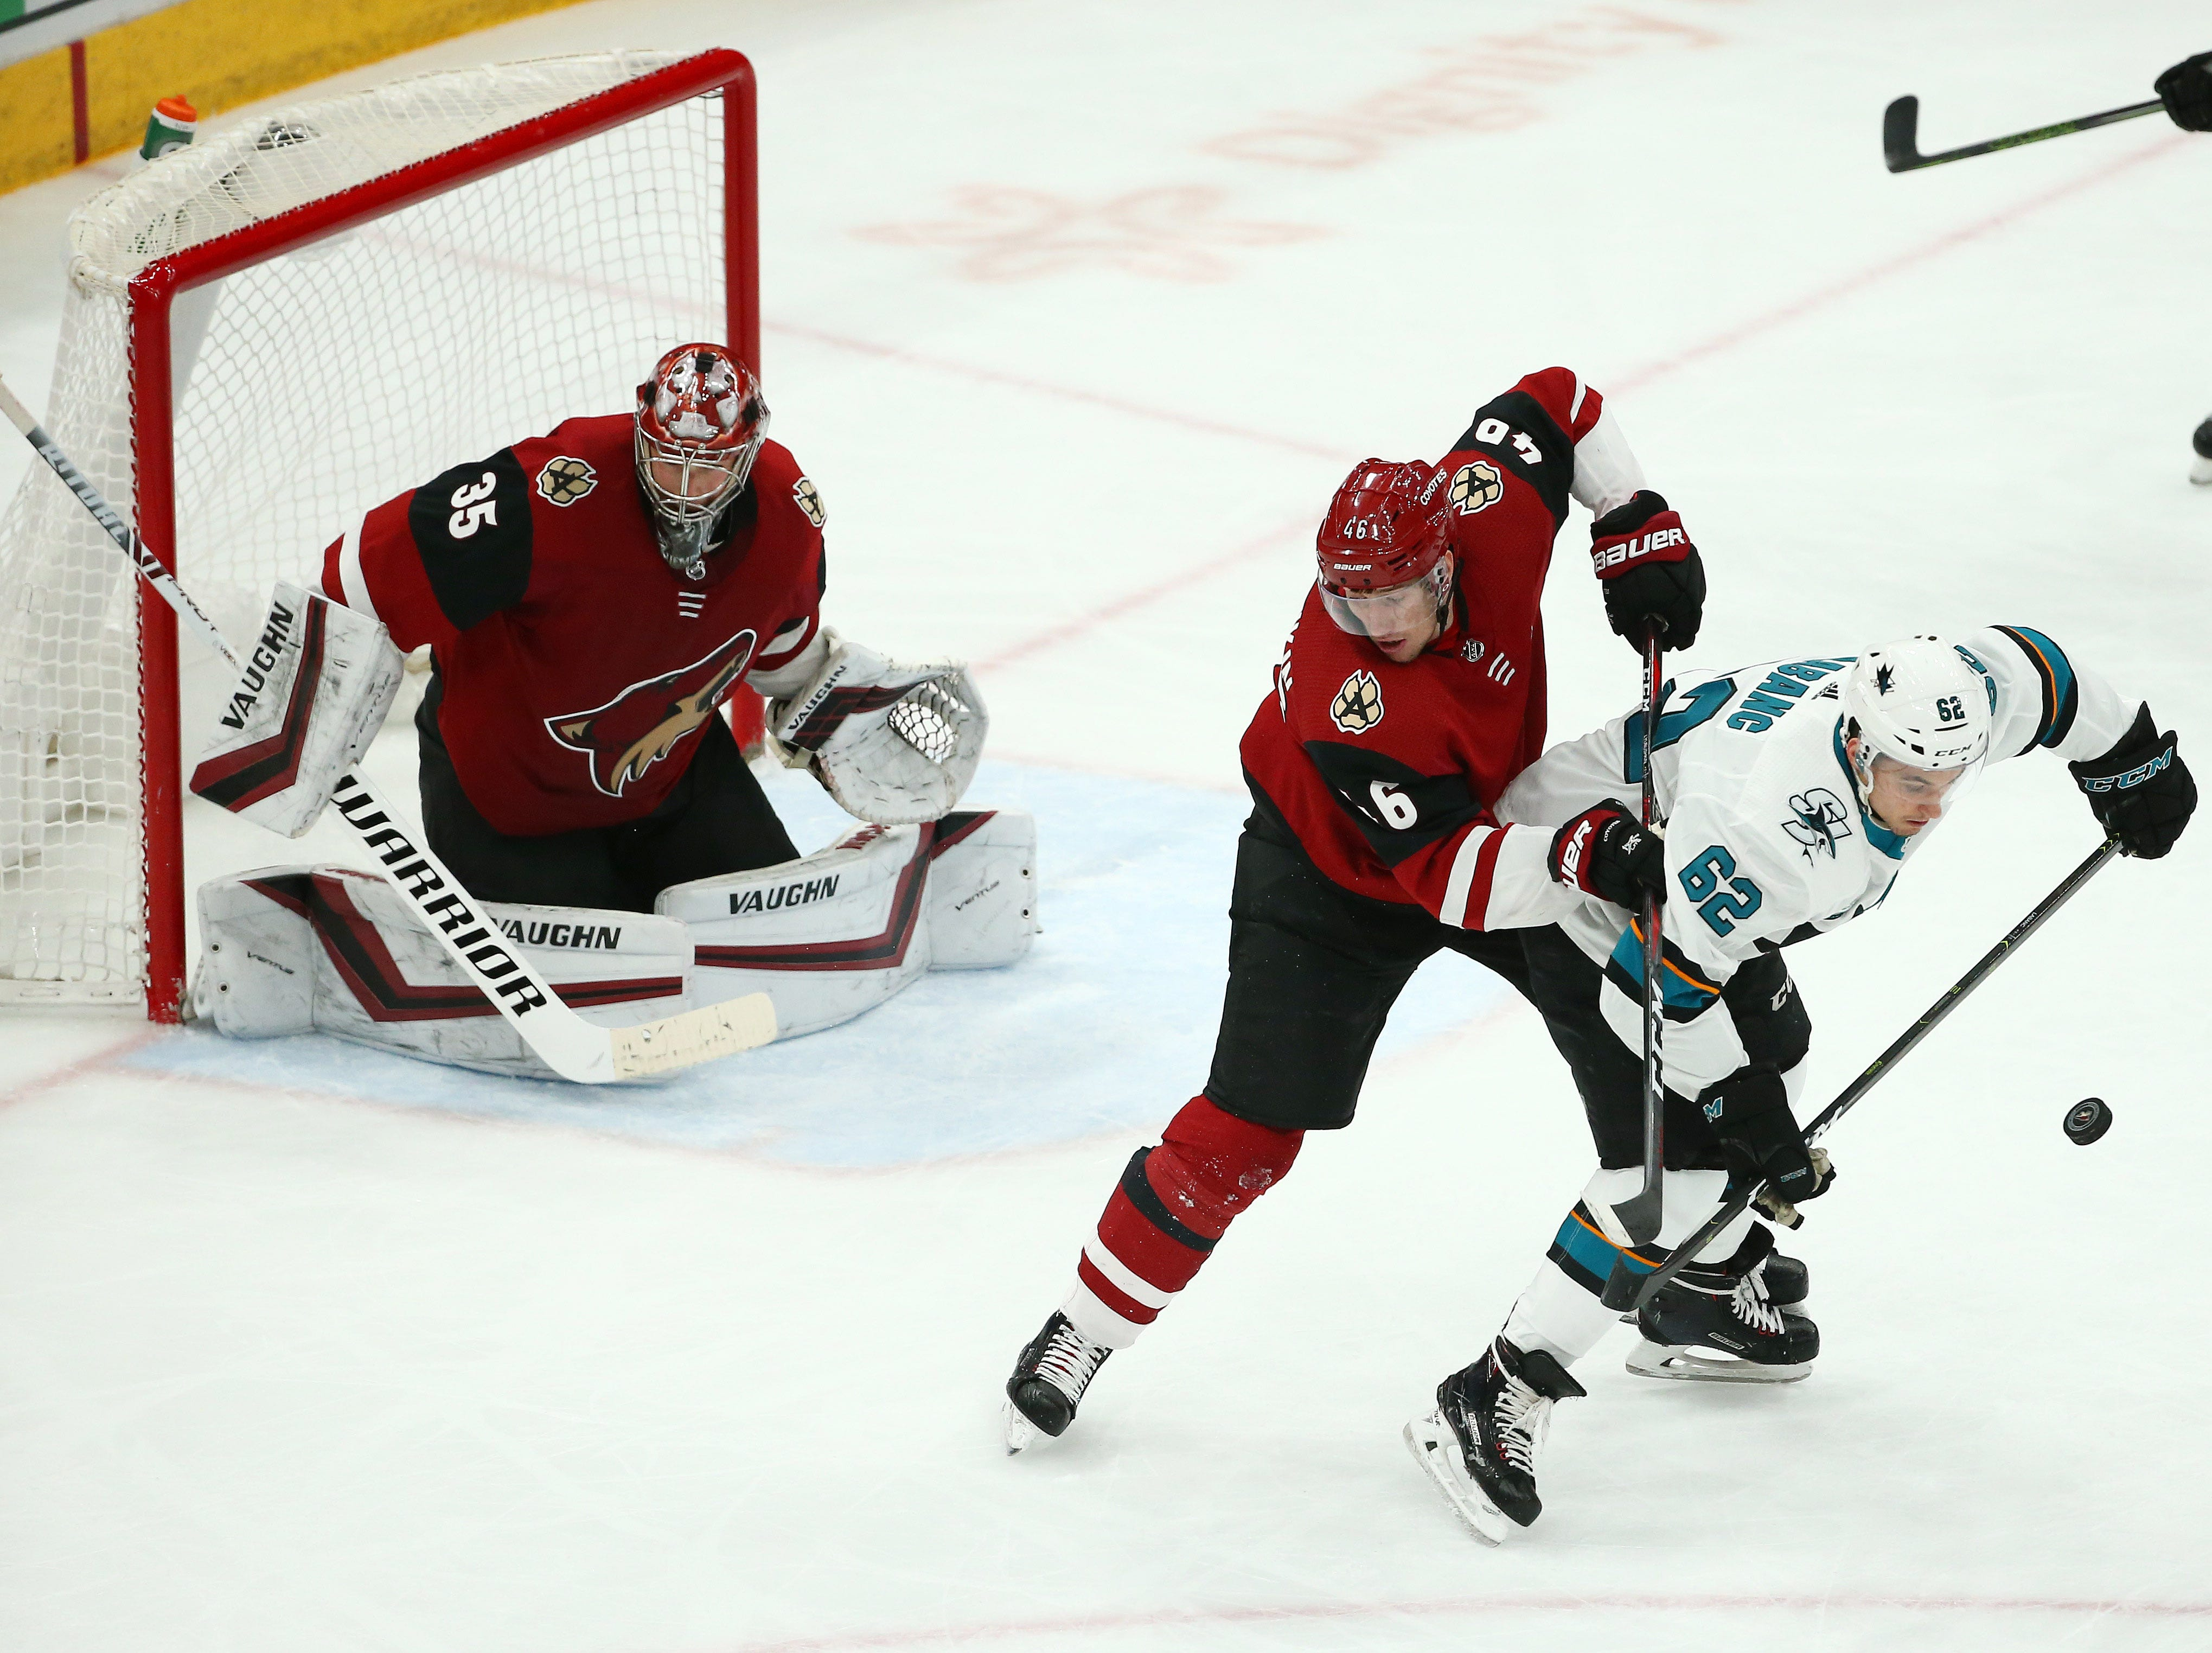 Arizona Coyotes' Ilya Lyubushkin (46) battles with San Jose Sharks' Kevin Labanc in the 1st period on Jan. 16 at Gila River Arena.